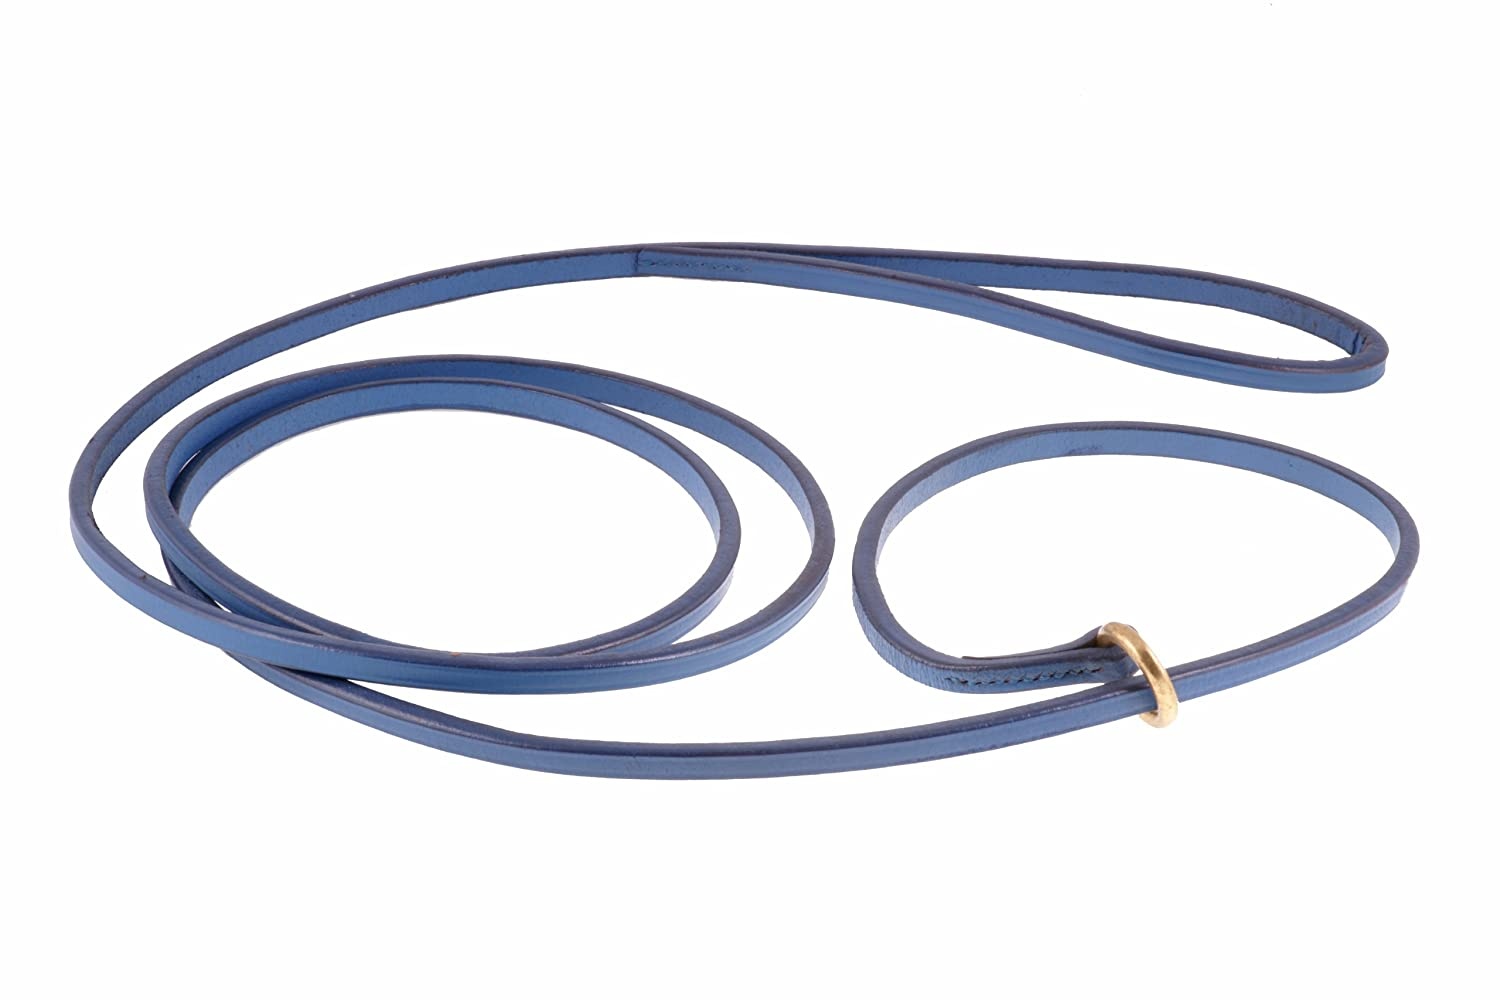 bluee Alvalley Flat Slip Lead for Dogs 3 16 in x 6ft